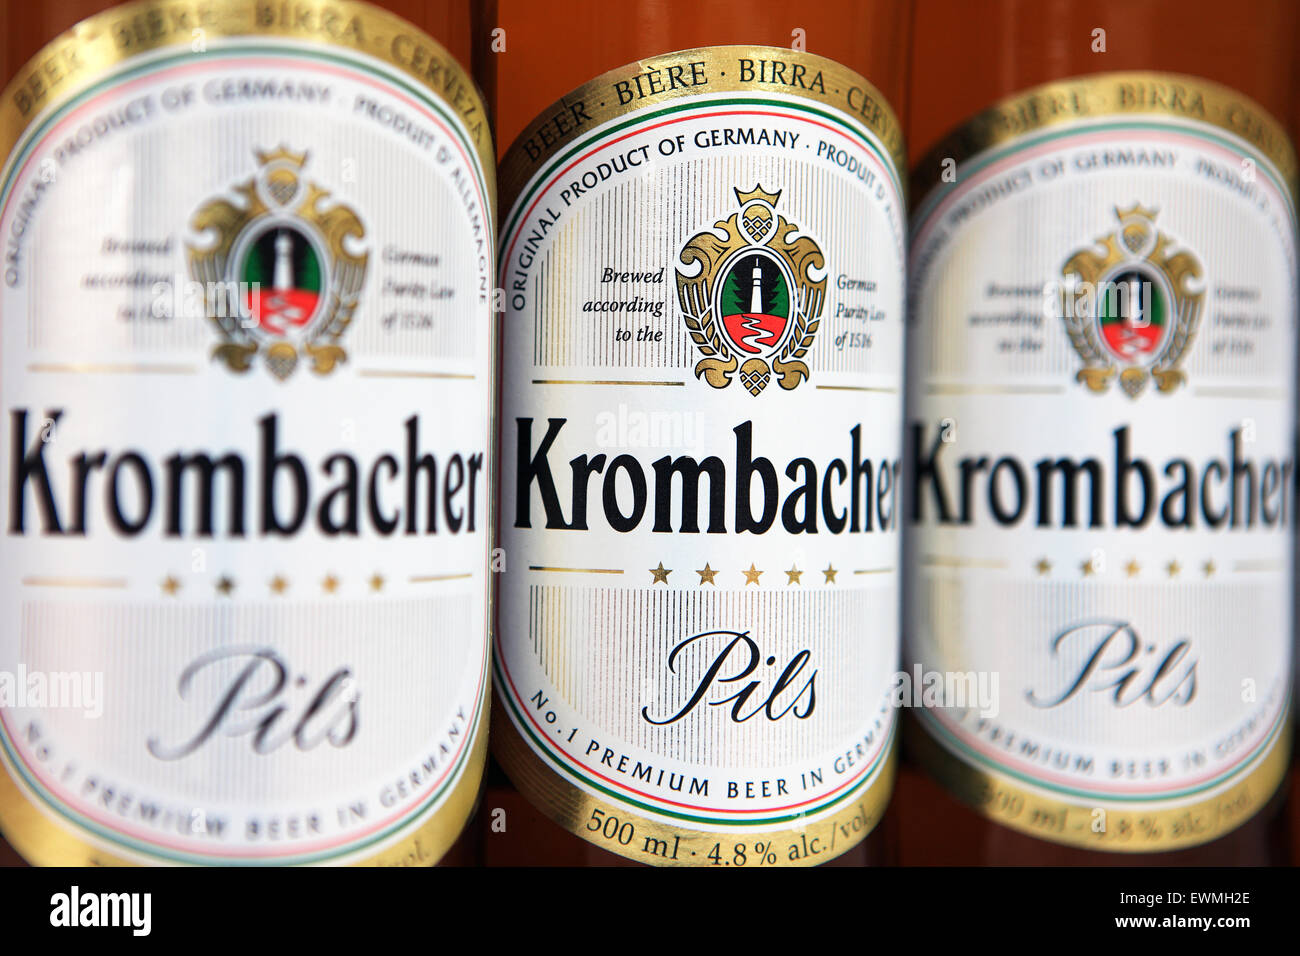 Bottles of Krombacher Pils - Stock Image